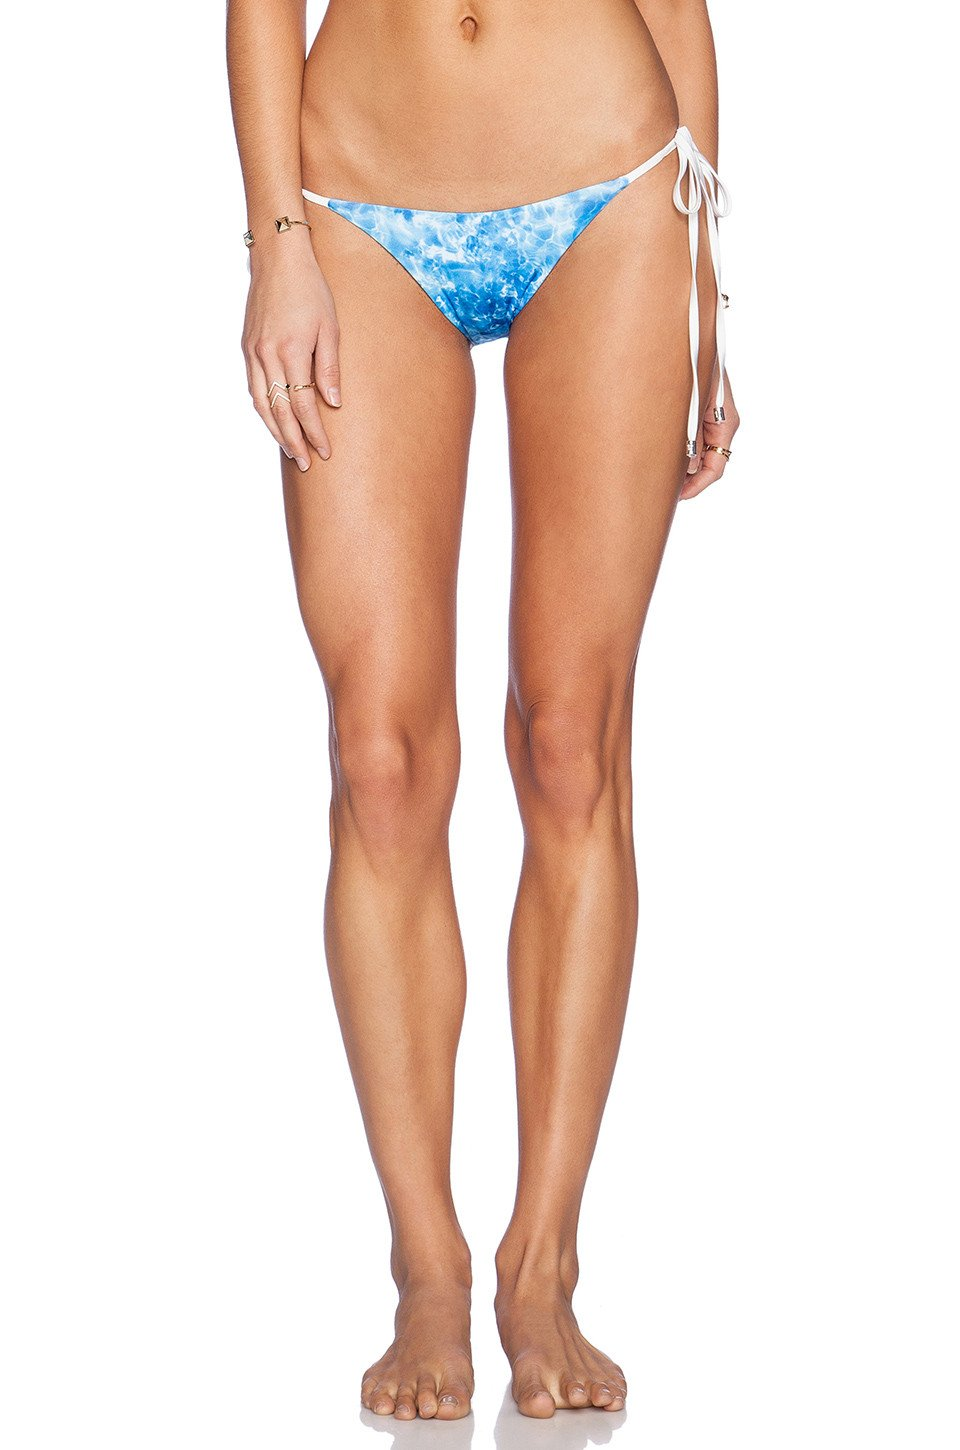 Wave Lengths Bikini Bottom - Kustom Label - 1